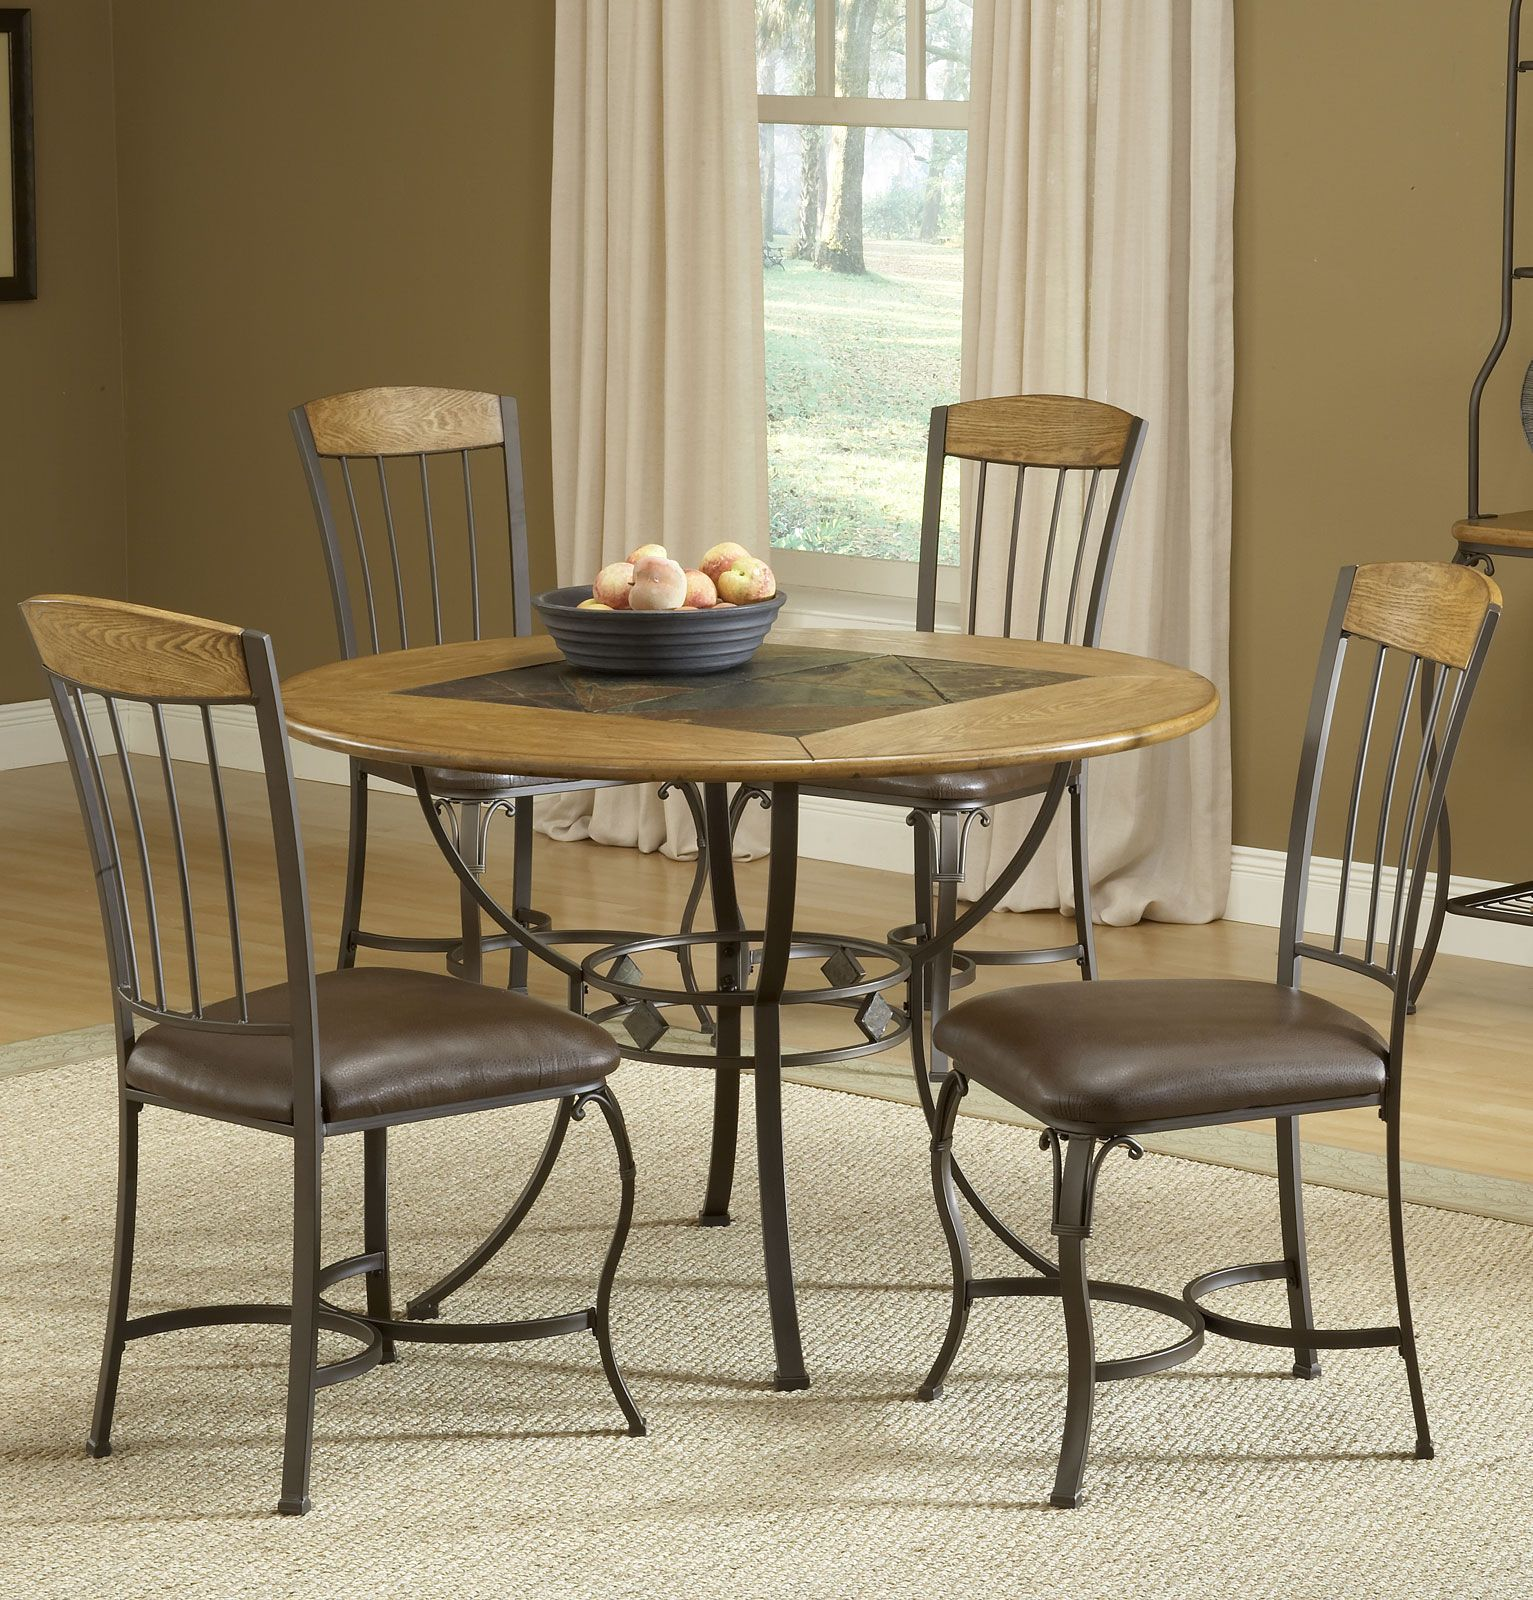 Lakeview Dining Room Endearing Lakeview 5Pc Dining Set With Round Table And Wood Accent Chairs Decorating Inspiration